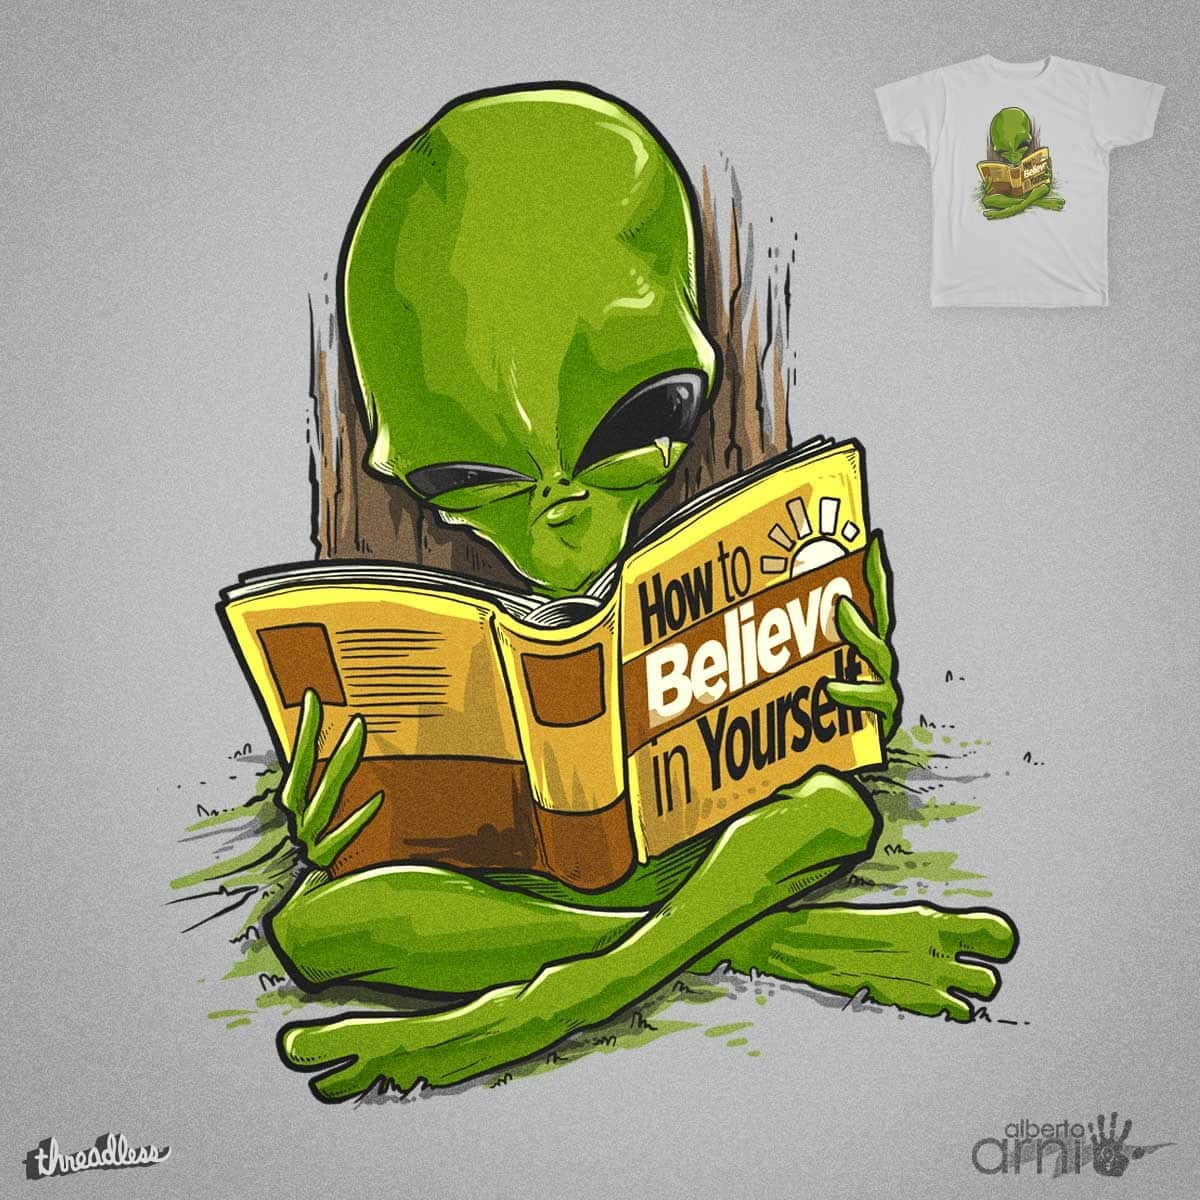 How to Believe in Yourself by albertoarni on Threadless